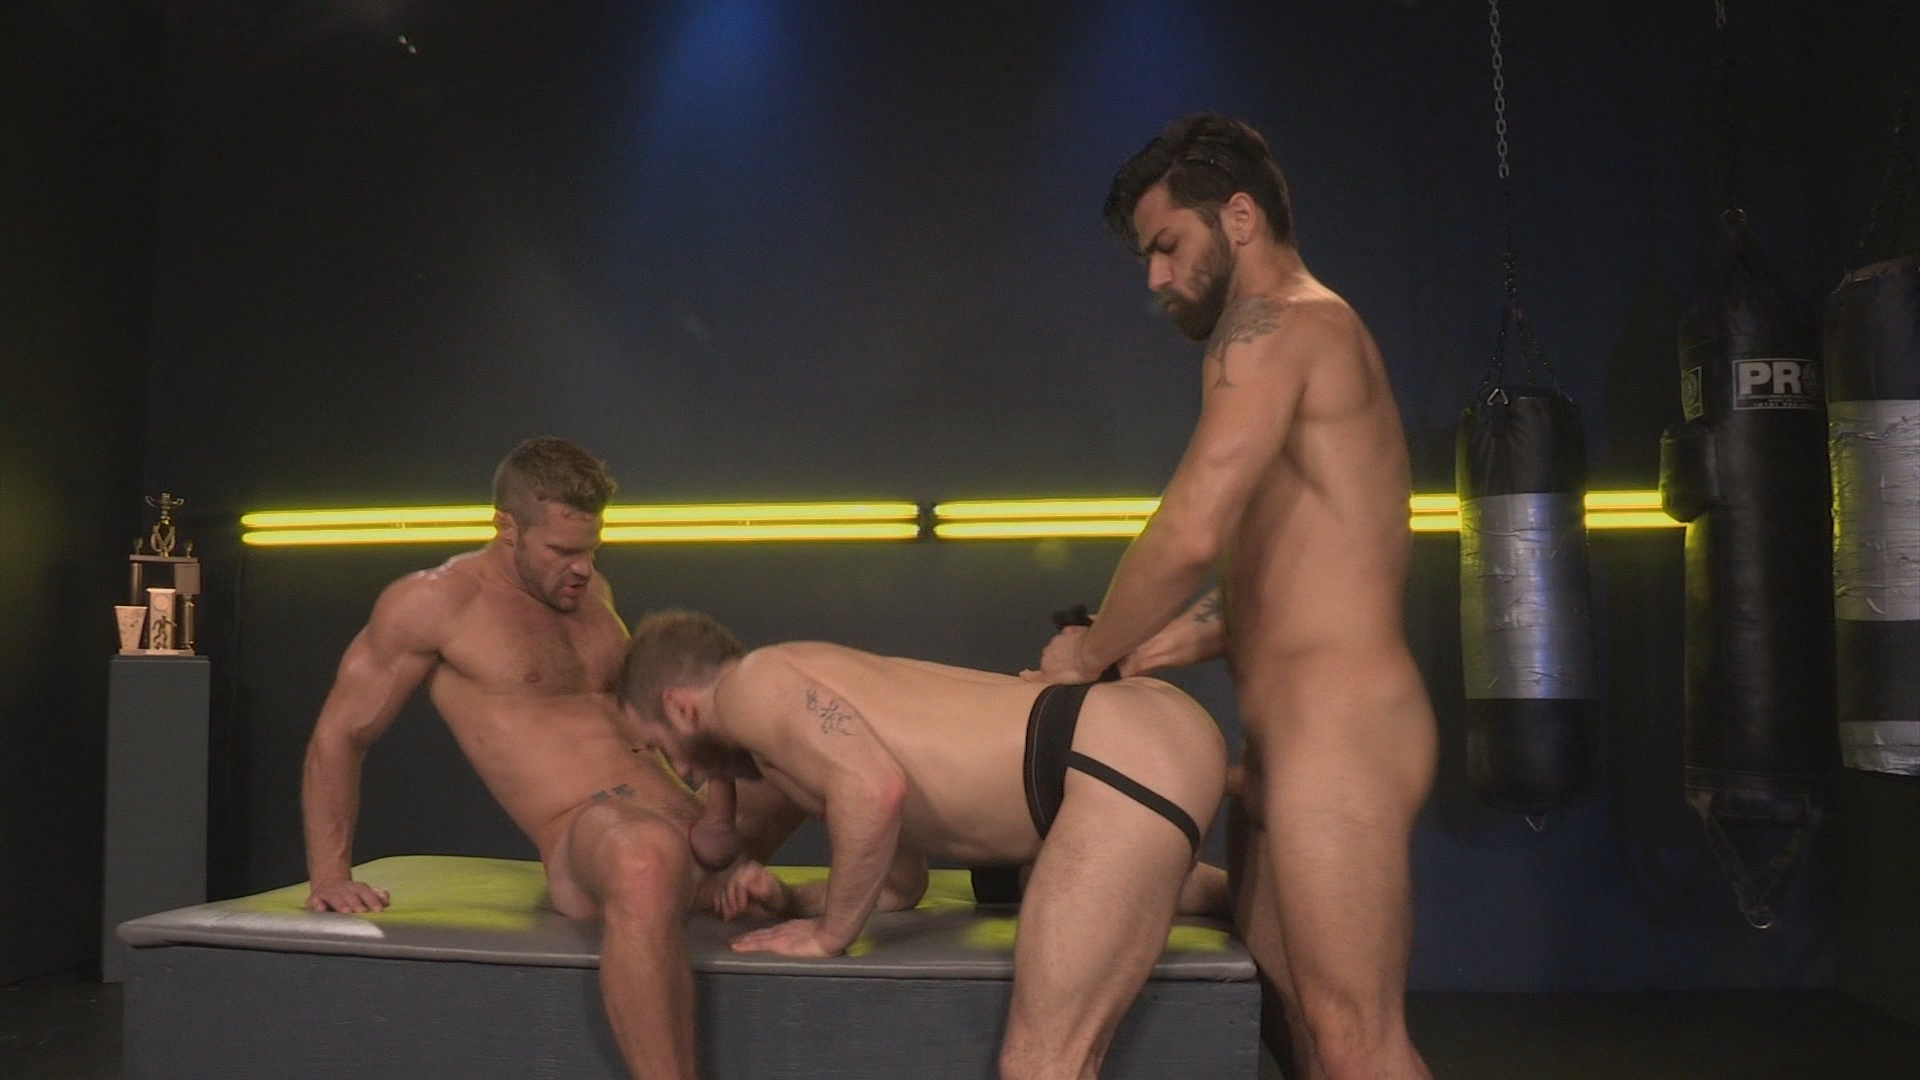 Cockfight Xvideo gay